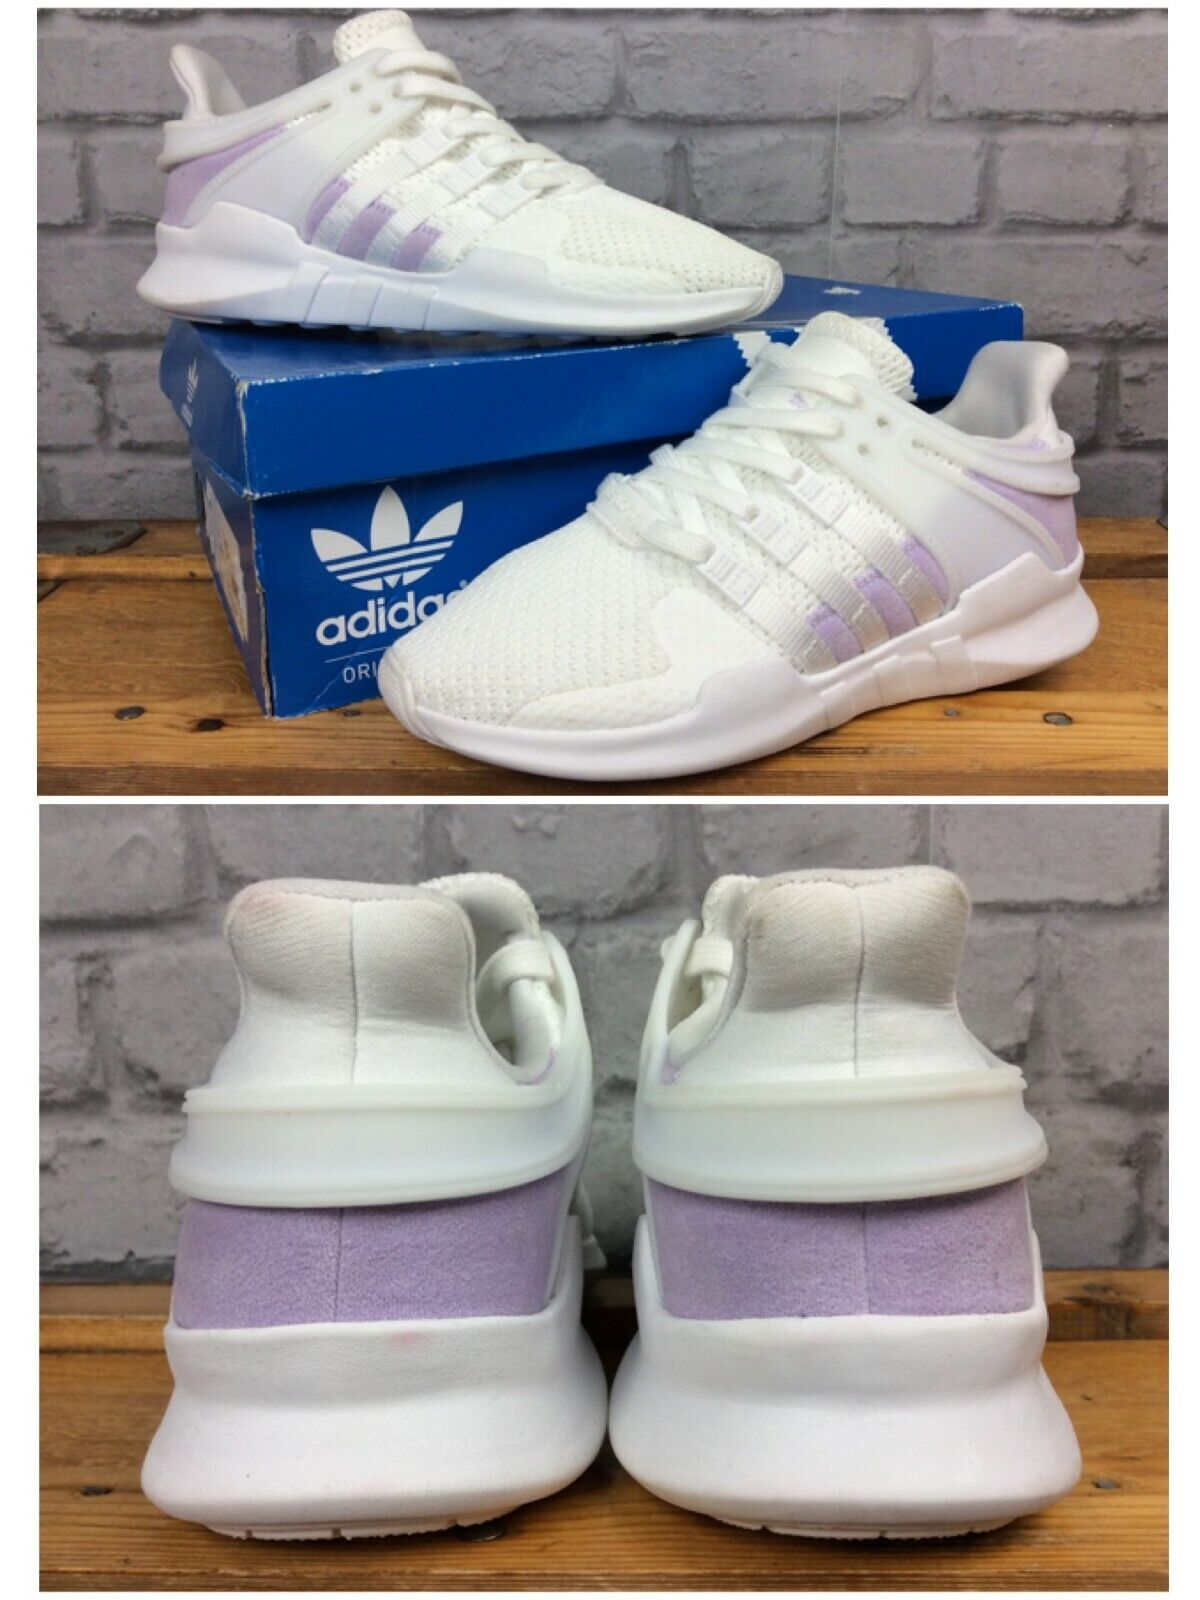 ADIDAS LADIES UK 5 EU 38 Weiß lila EQT SUPPORT ADV TRAINERS lila LOGO LG